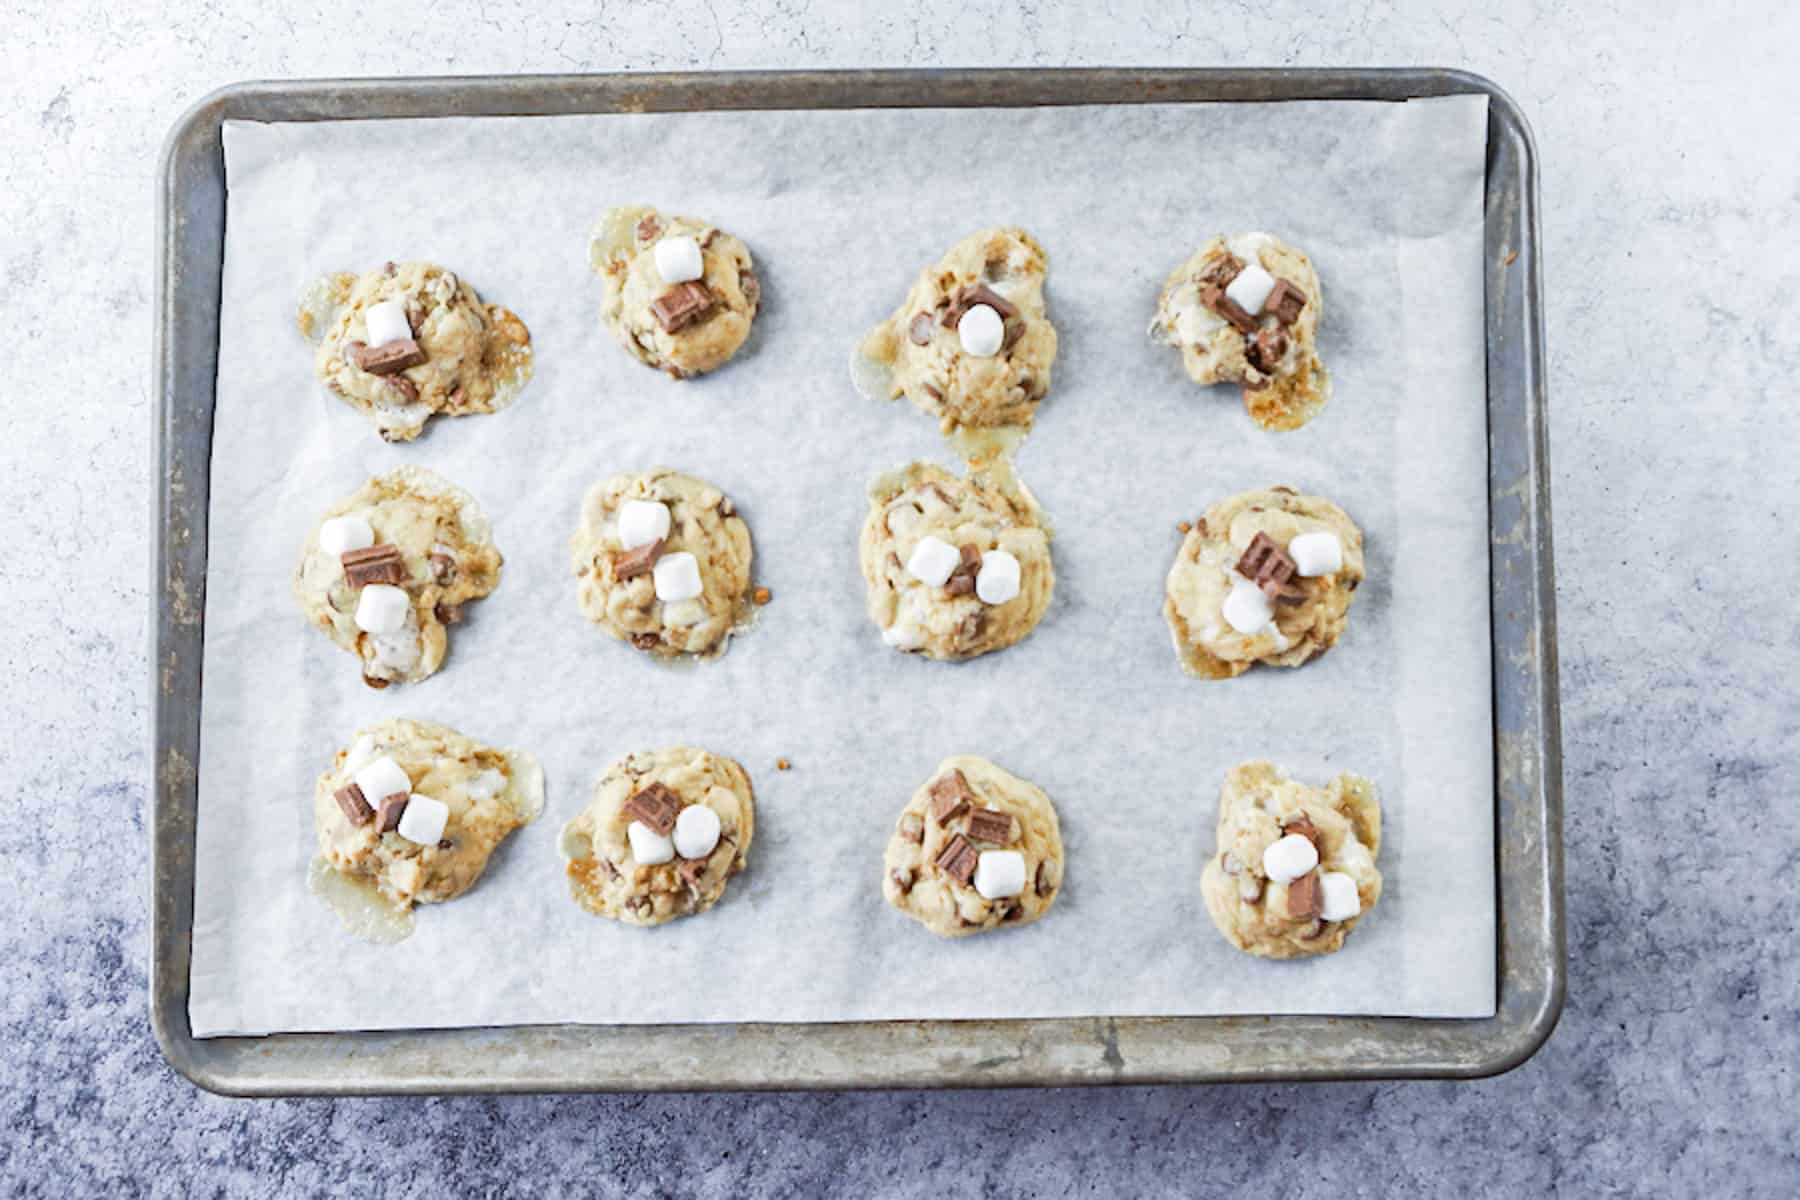 adding more marshmallows and chocolate to partially baked cookies